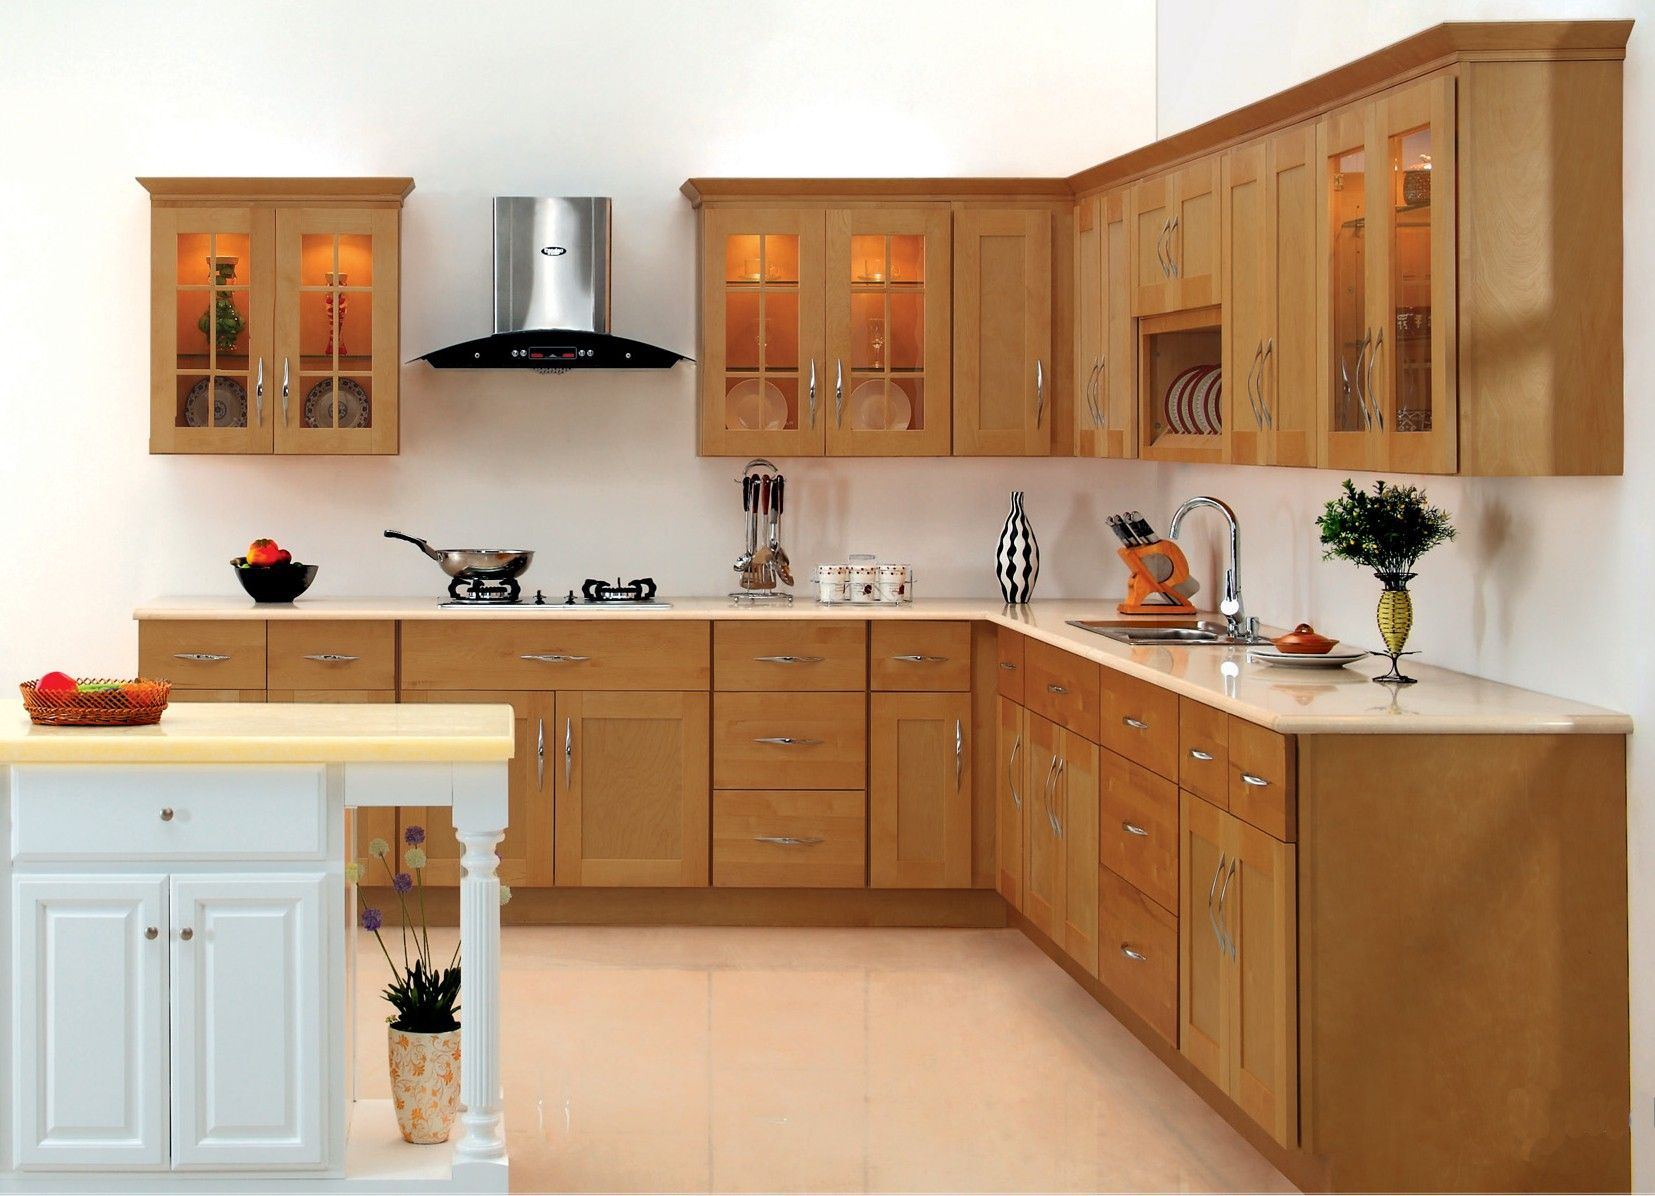 Magnificent Kitchen Island Plan for Adorable Minimalist Penthouse ...